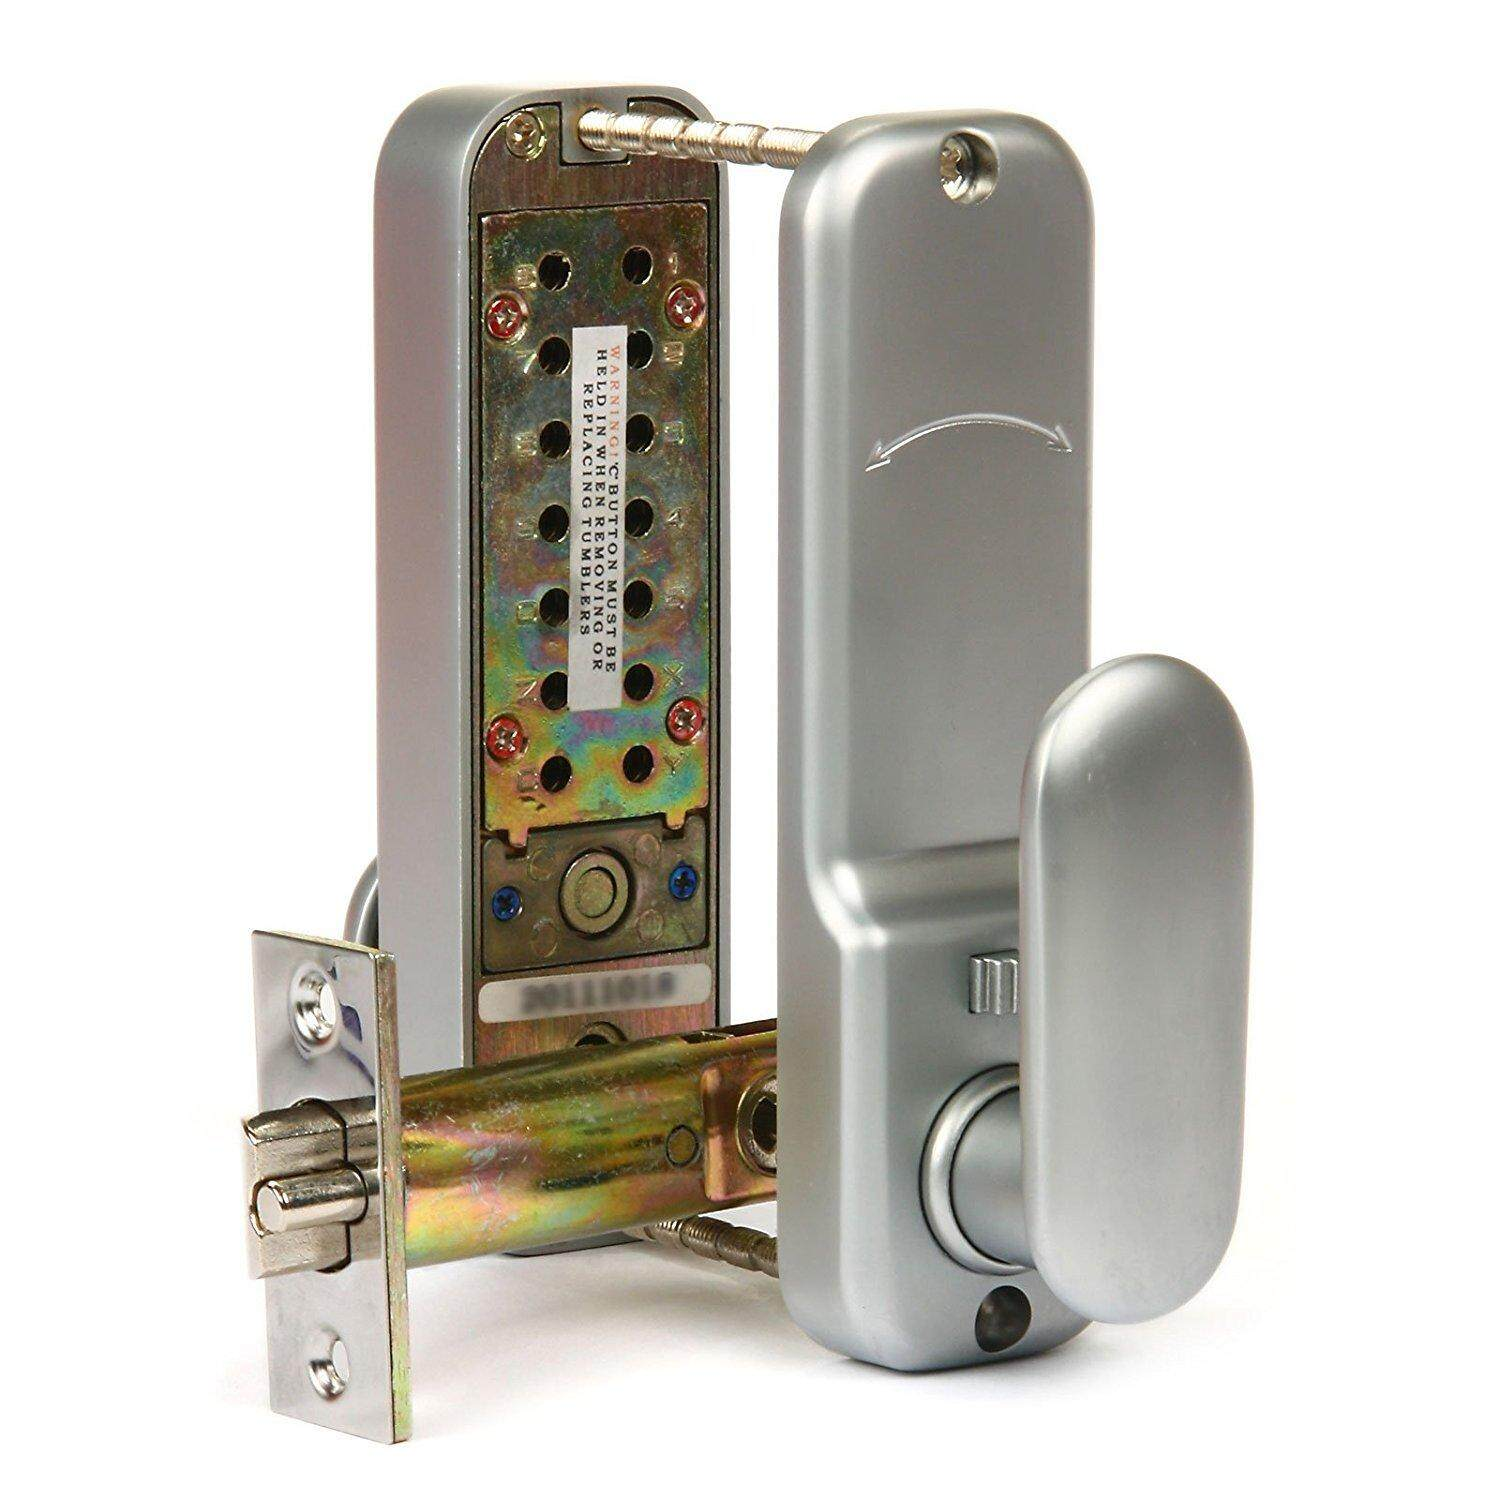 Digital Code Push Button Door Lock Key Pad Code Combination